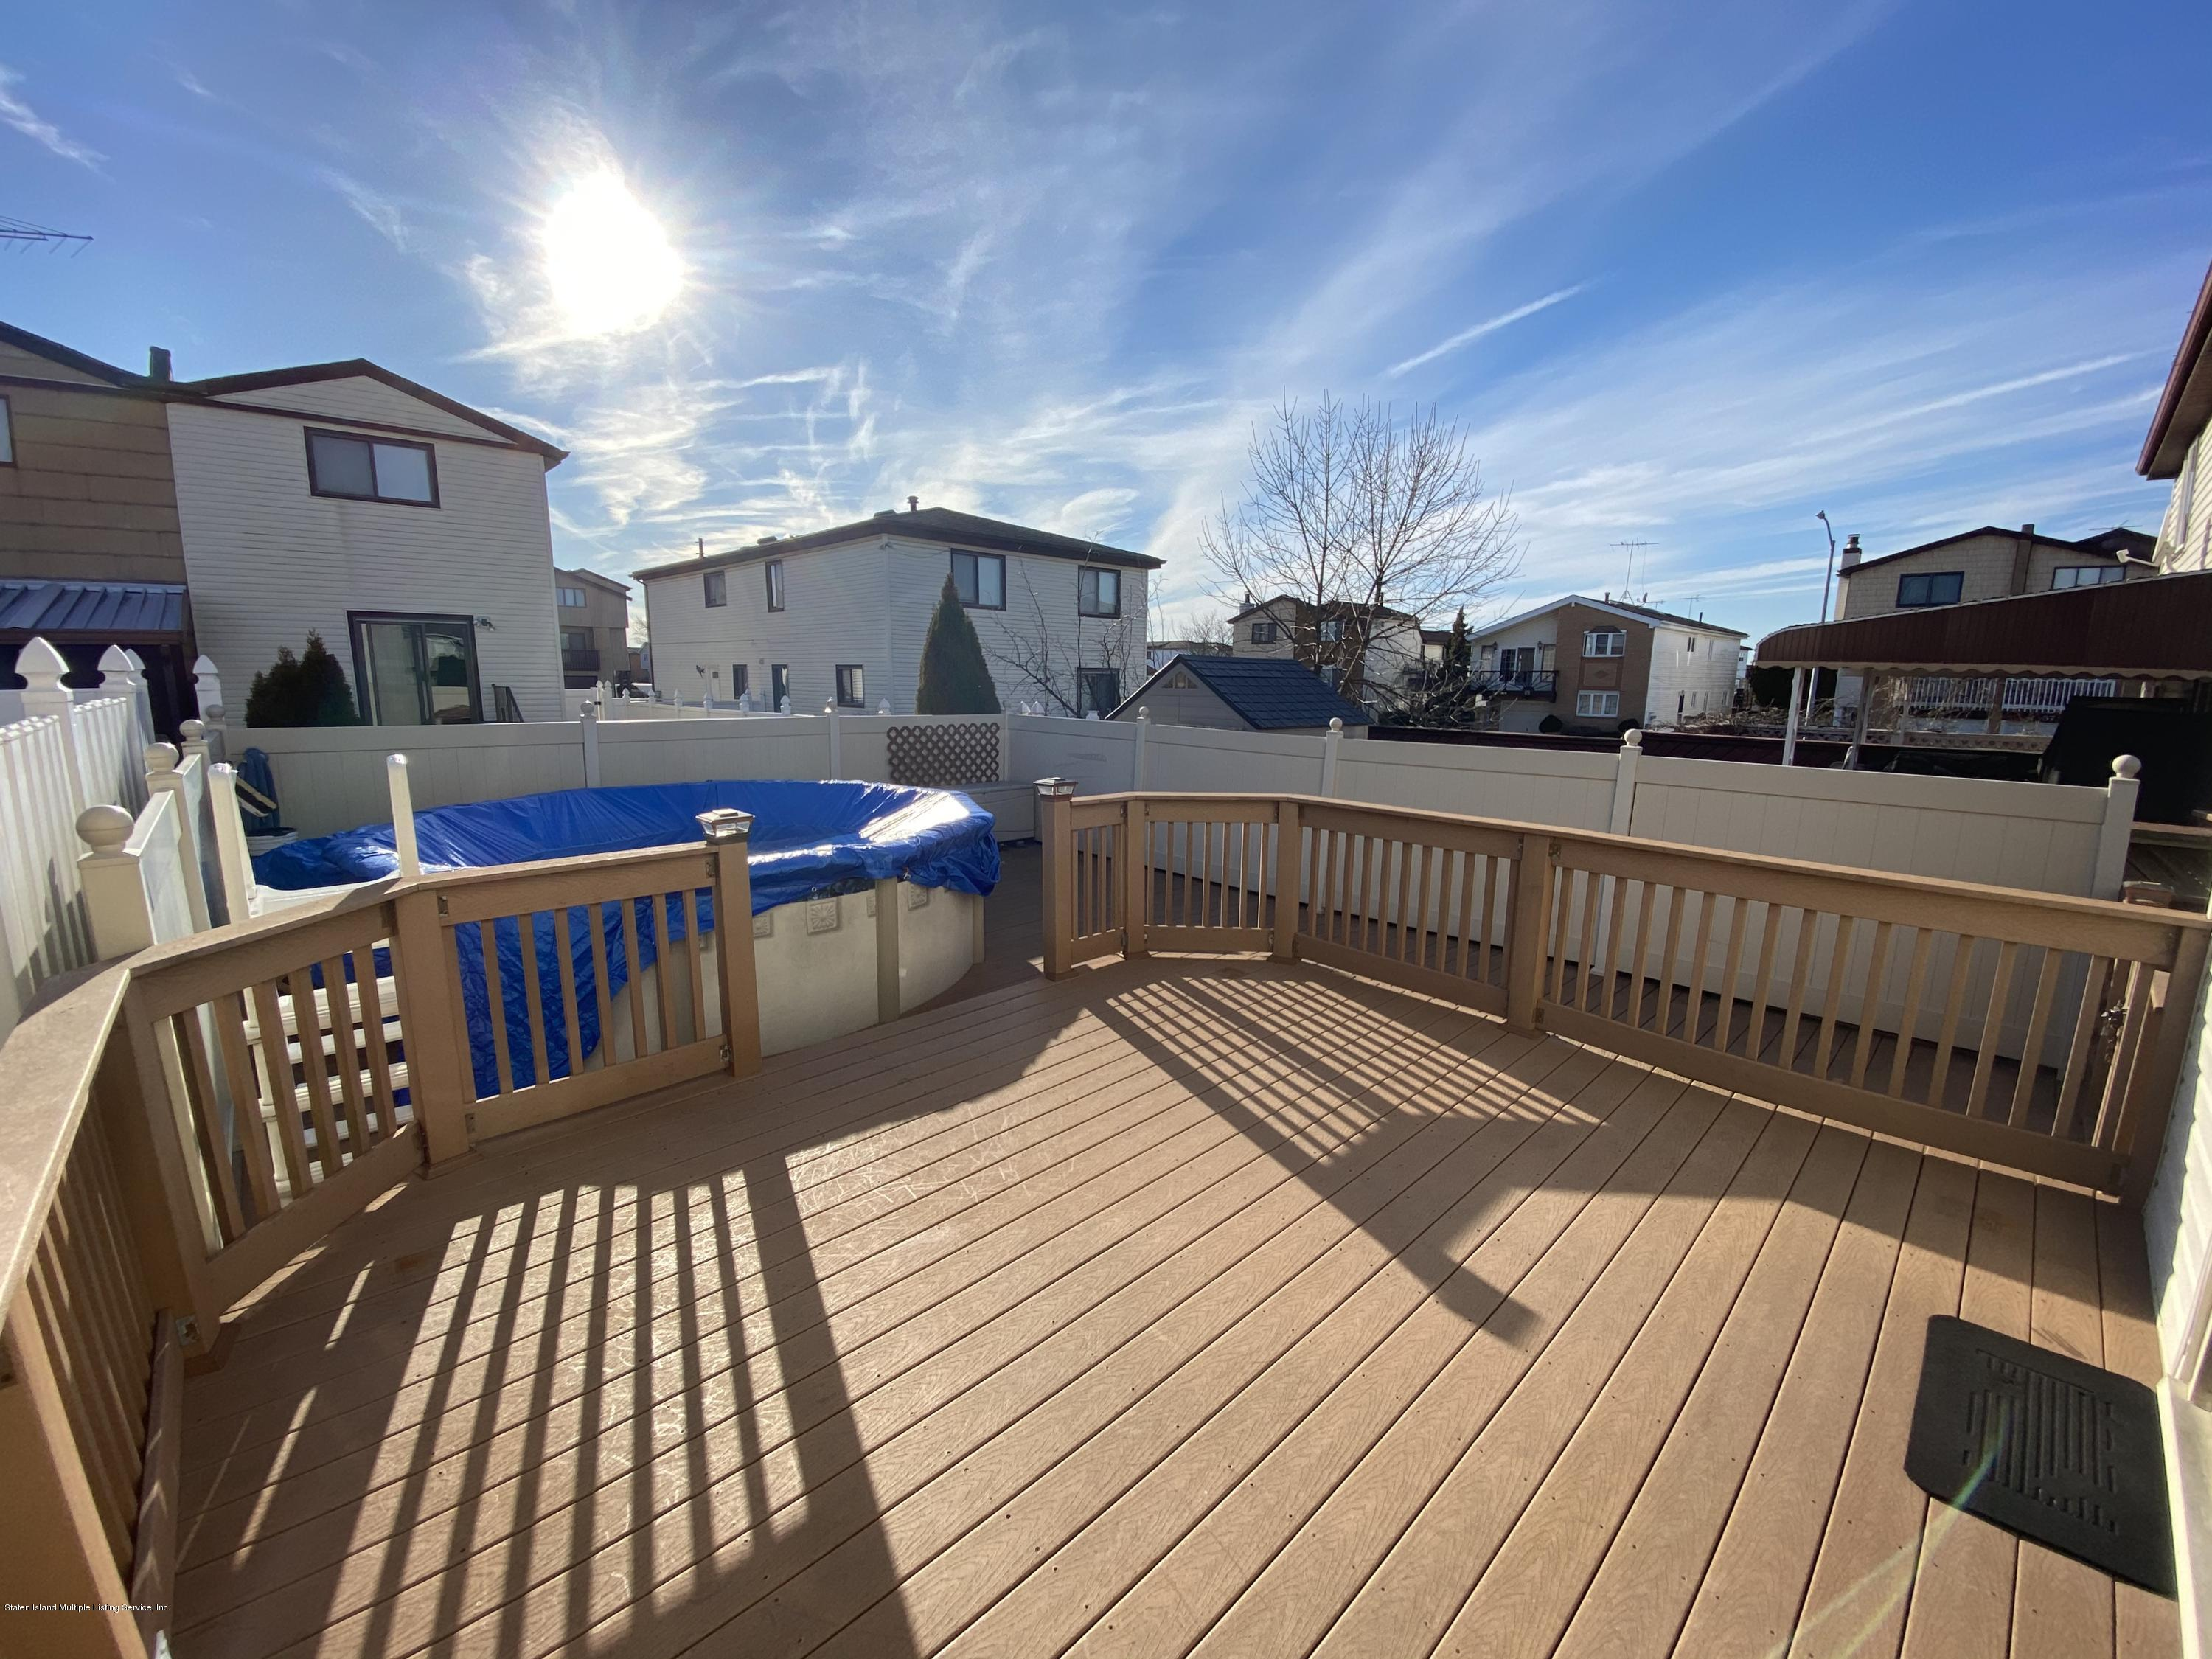 Single Family - Attached 118 Braisted Avenue  Staten Island, NY 10314, MLS-1135869-17